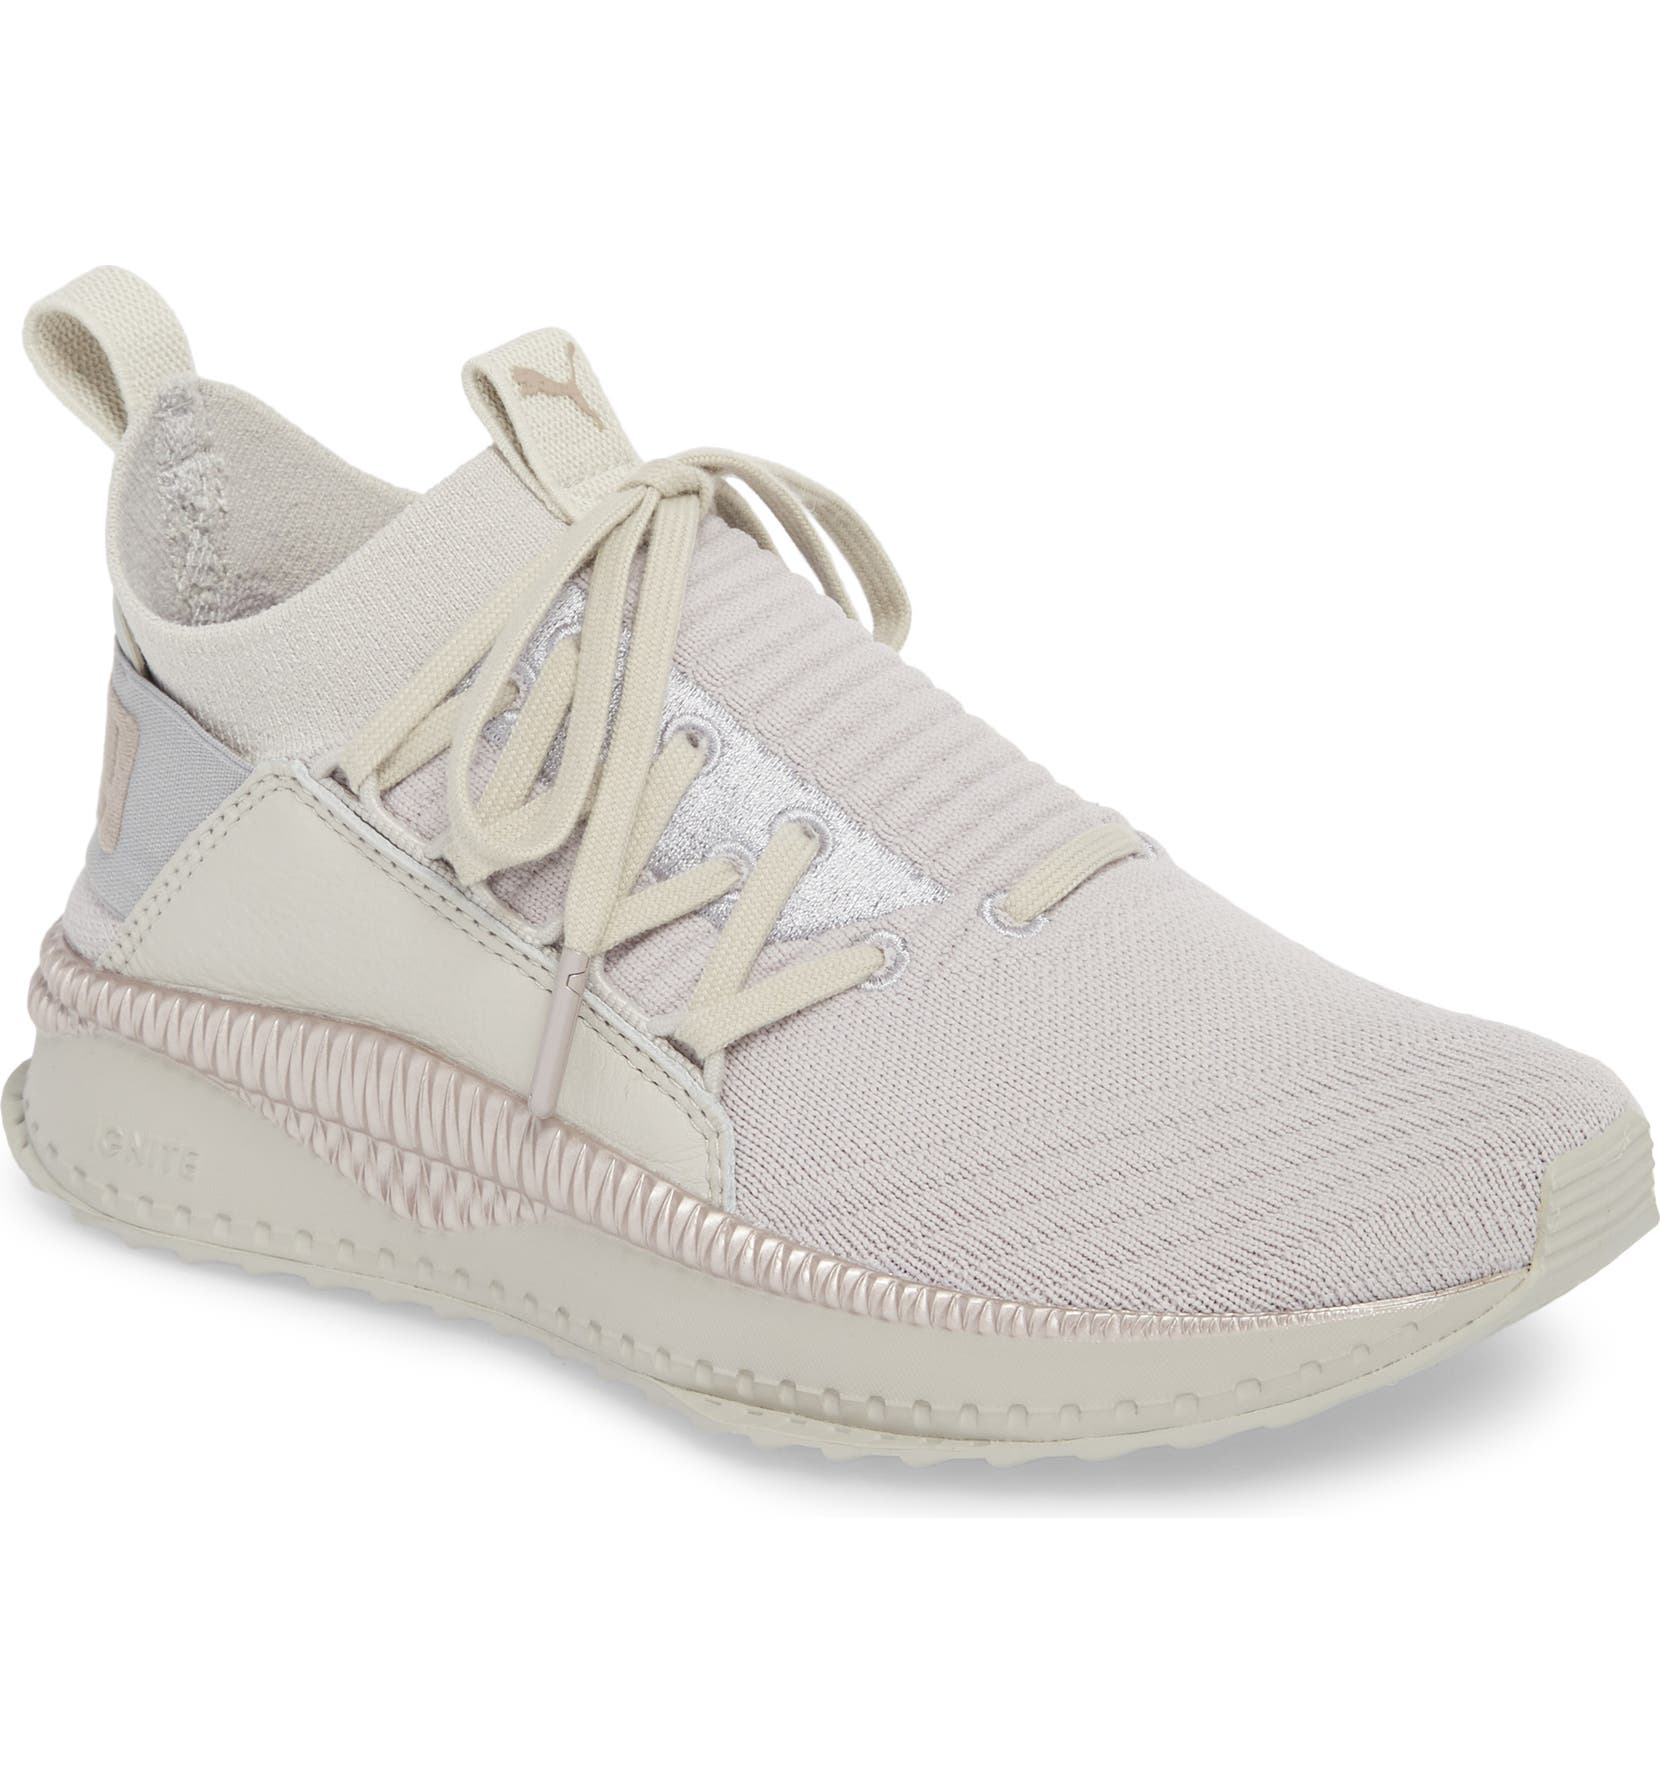 PUMA Tsugi Jun Training Shoe (Women)  d8748e899